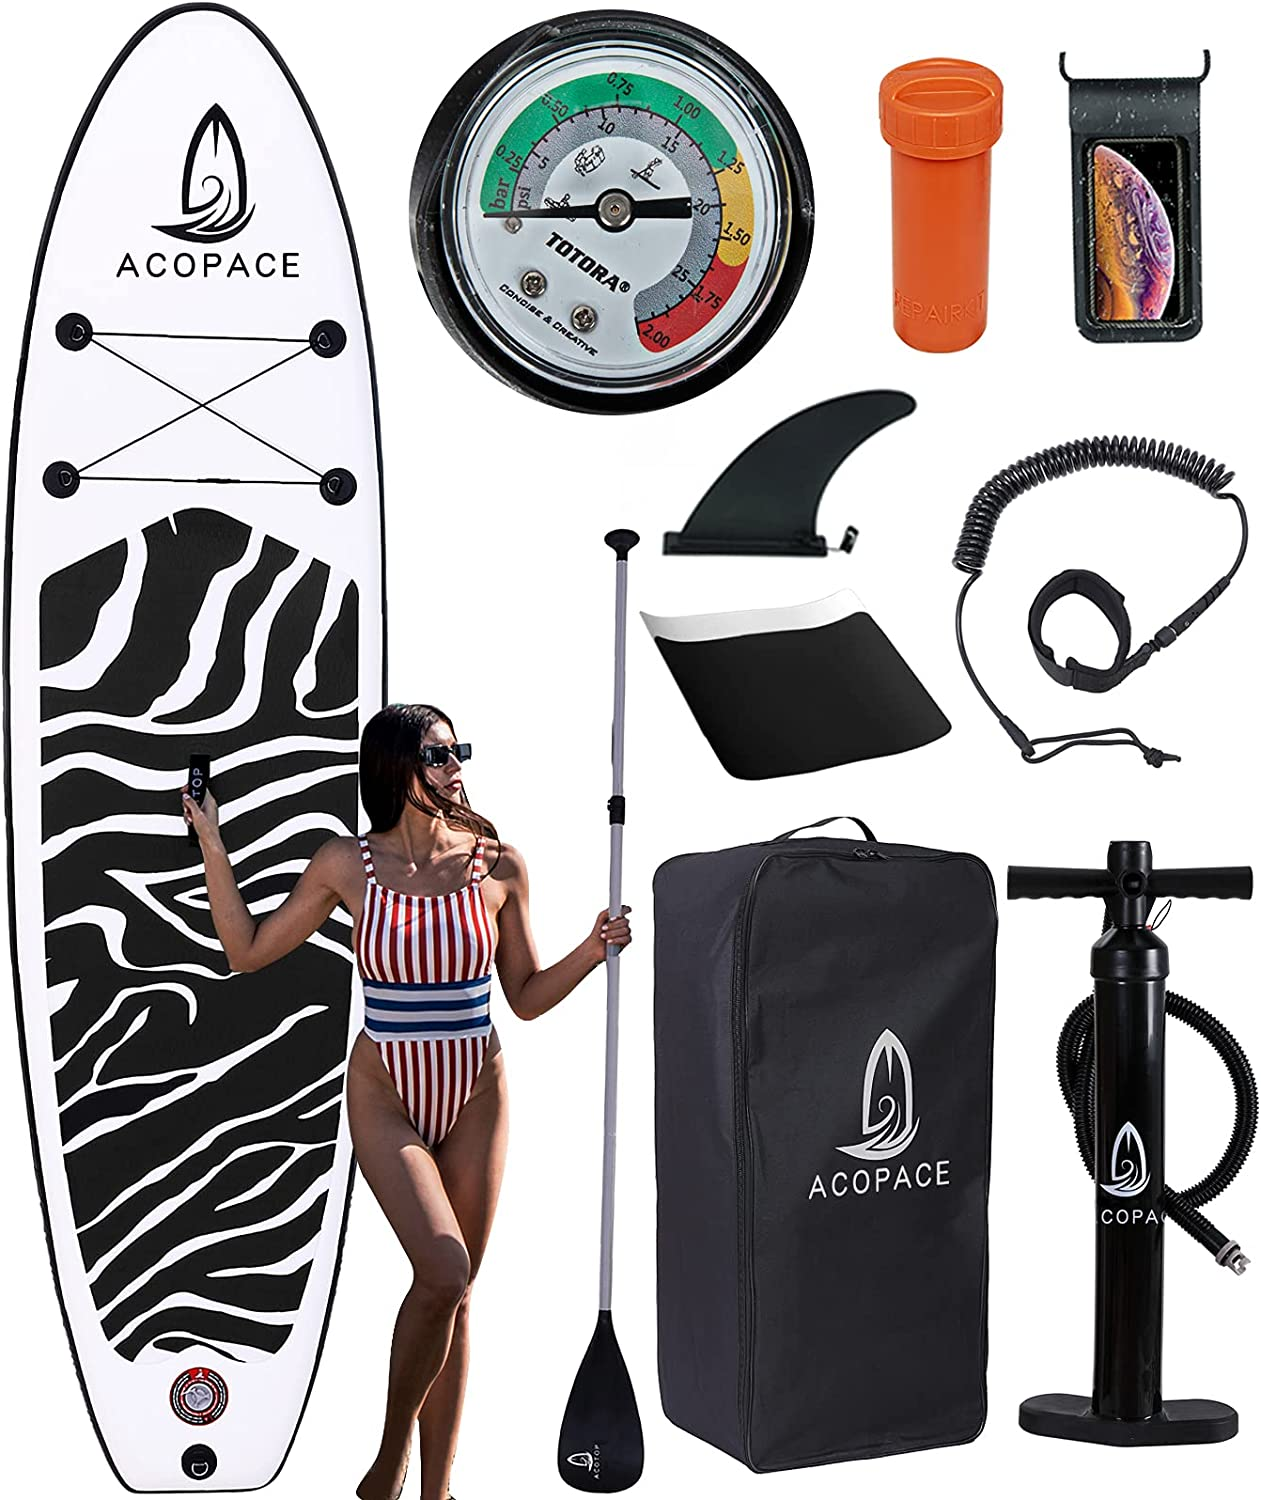 Max 74% OFF ACOTOP Inflatable Paddle Boards Max 84% OFF Paddleboa Stand 10'6